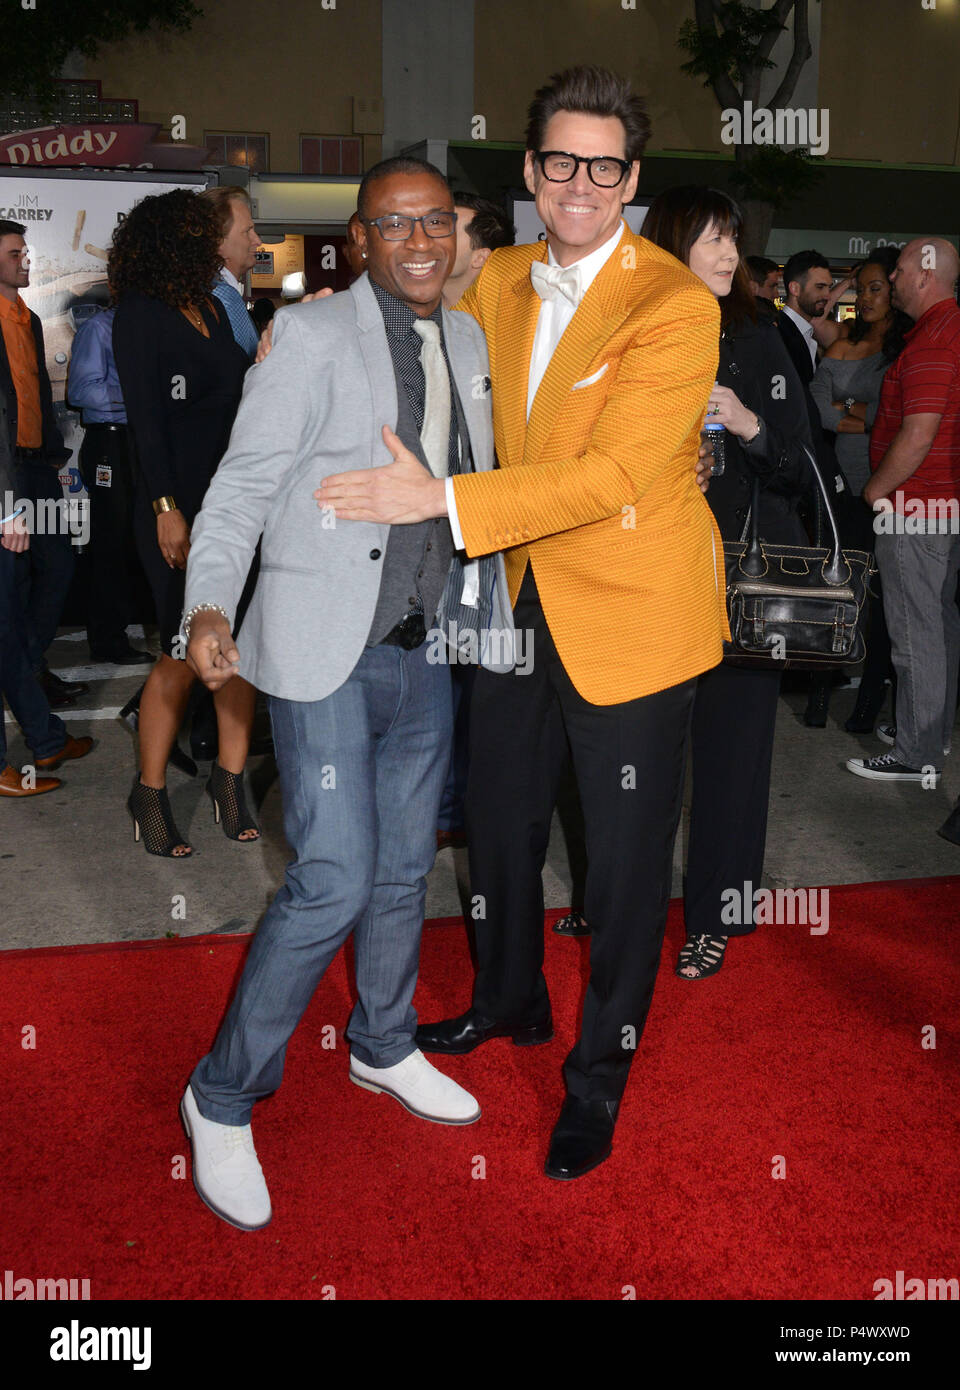 Jim Carrey, Tommy Davidson 187 at the Dumb and Dumber To